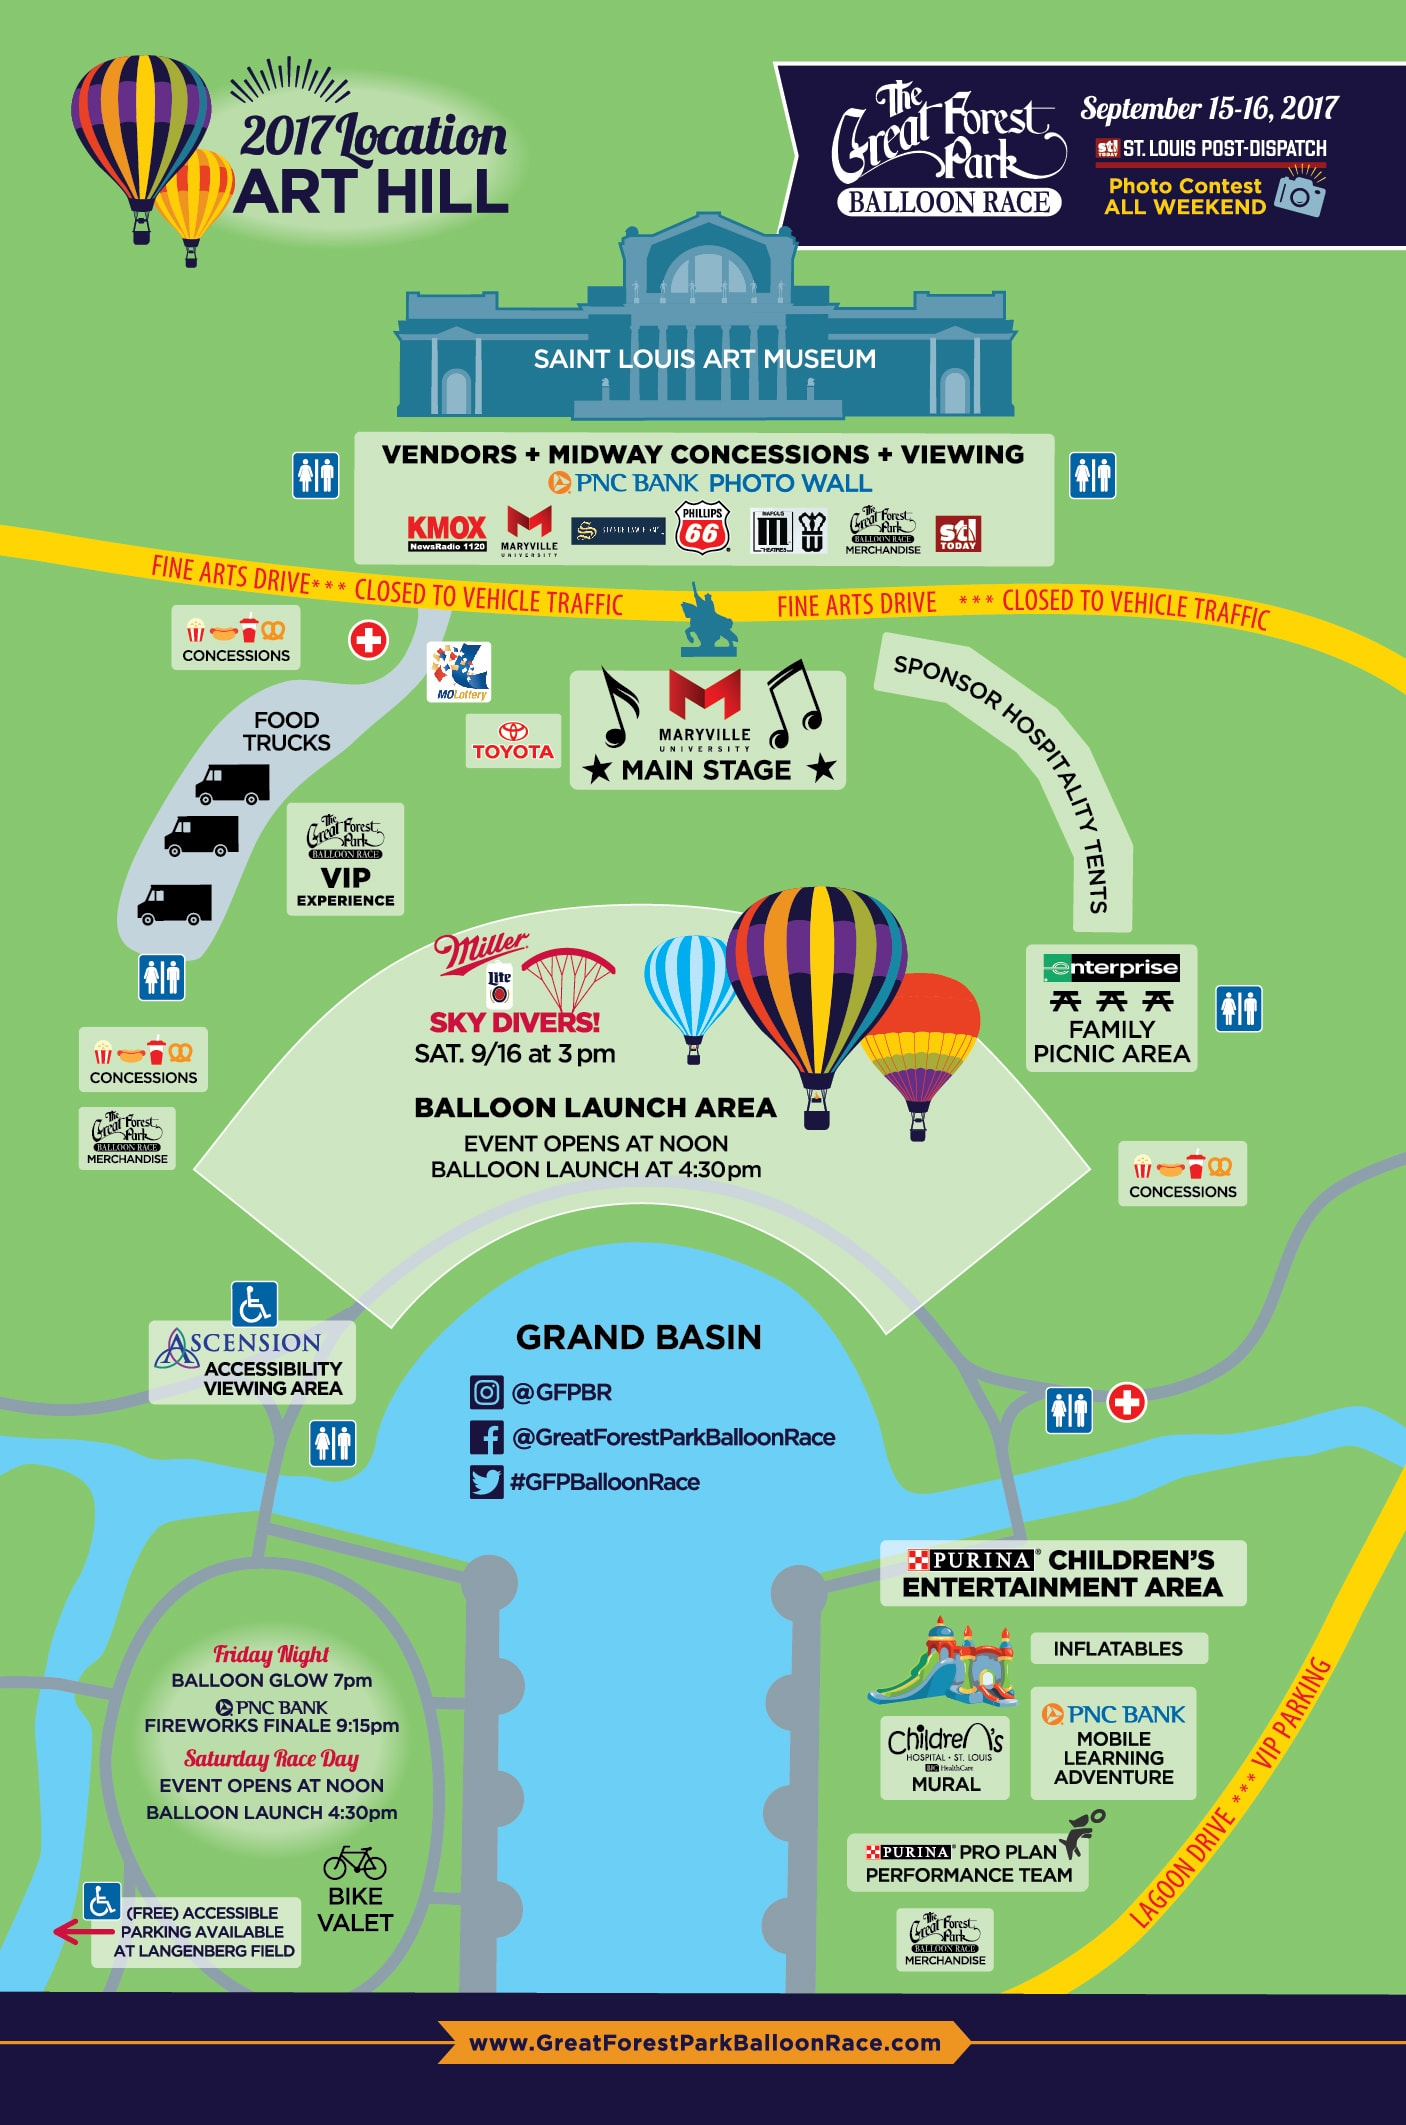 Please Email Us At Infoatgreatforestparkballoonrace Com And We Will Do Our Best To Answer Any Further Questions